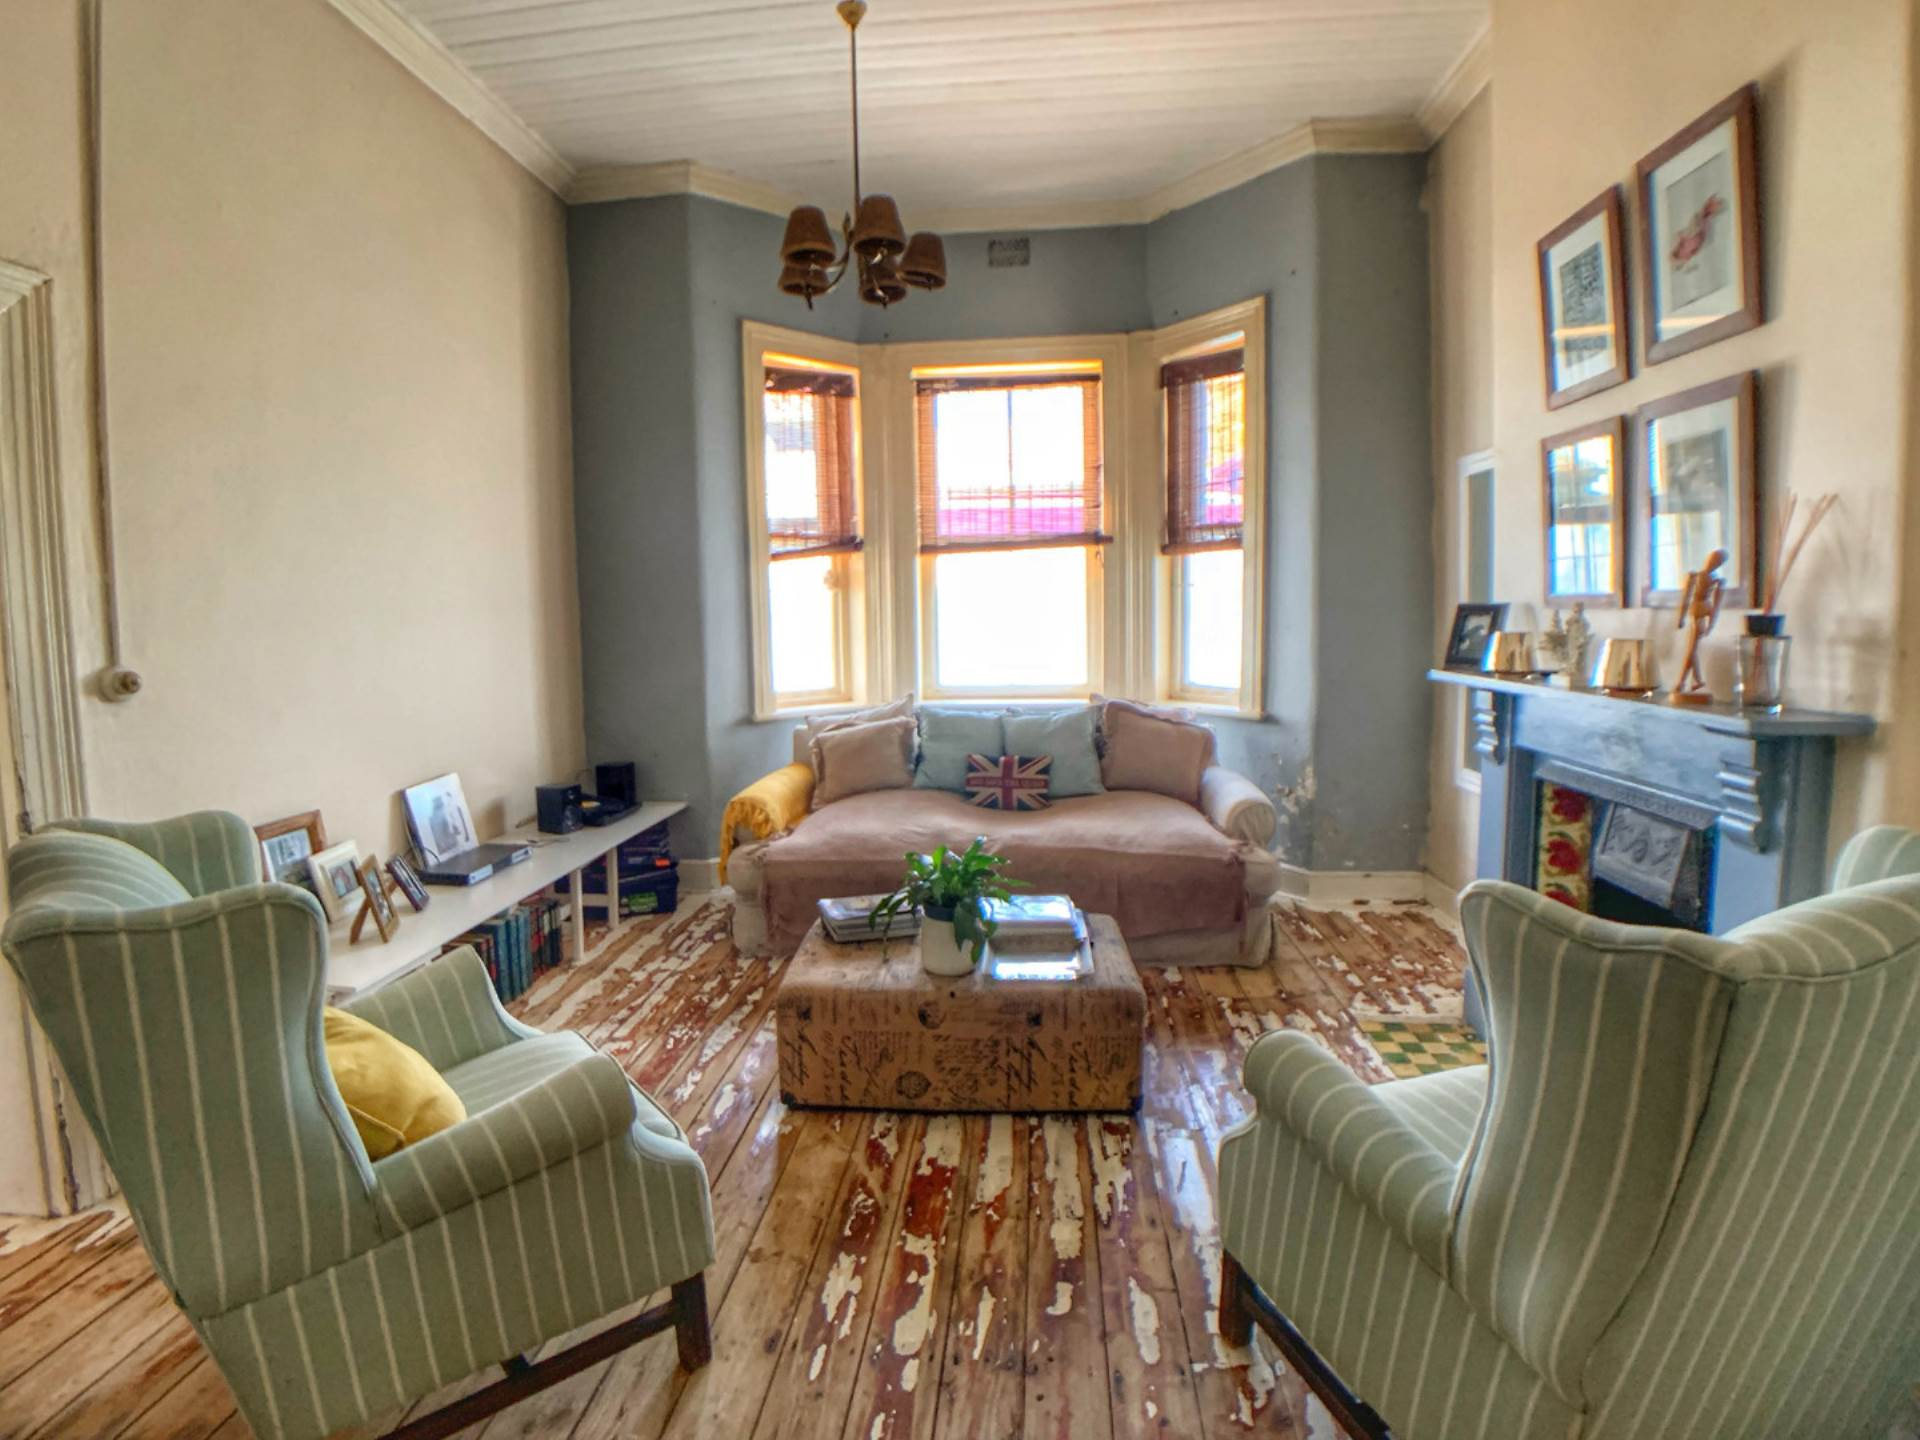 House For Sale In Sea Point, Cape Town, Western Cape for R